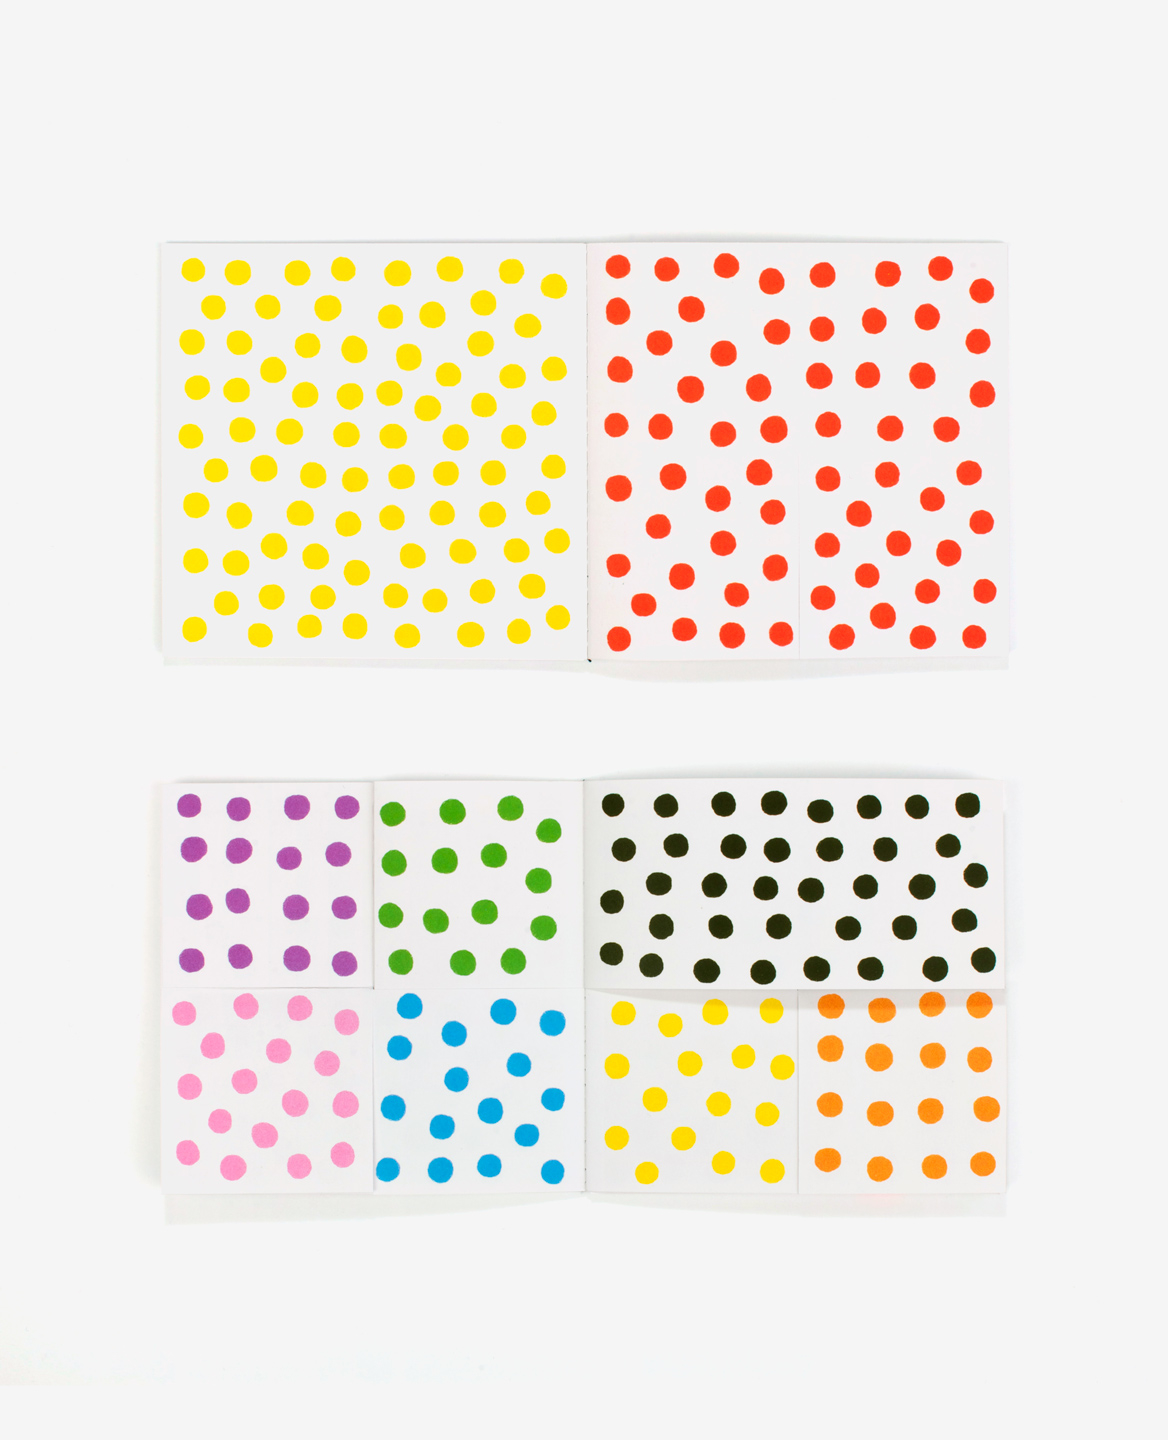 Multi colored pages of the book Dots by Antonio Ladrillo published by Éditions du livre